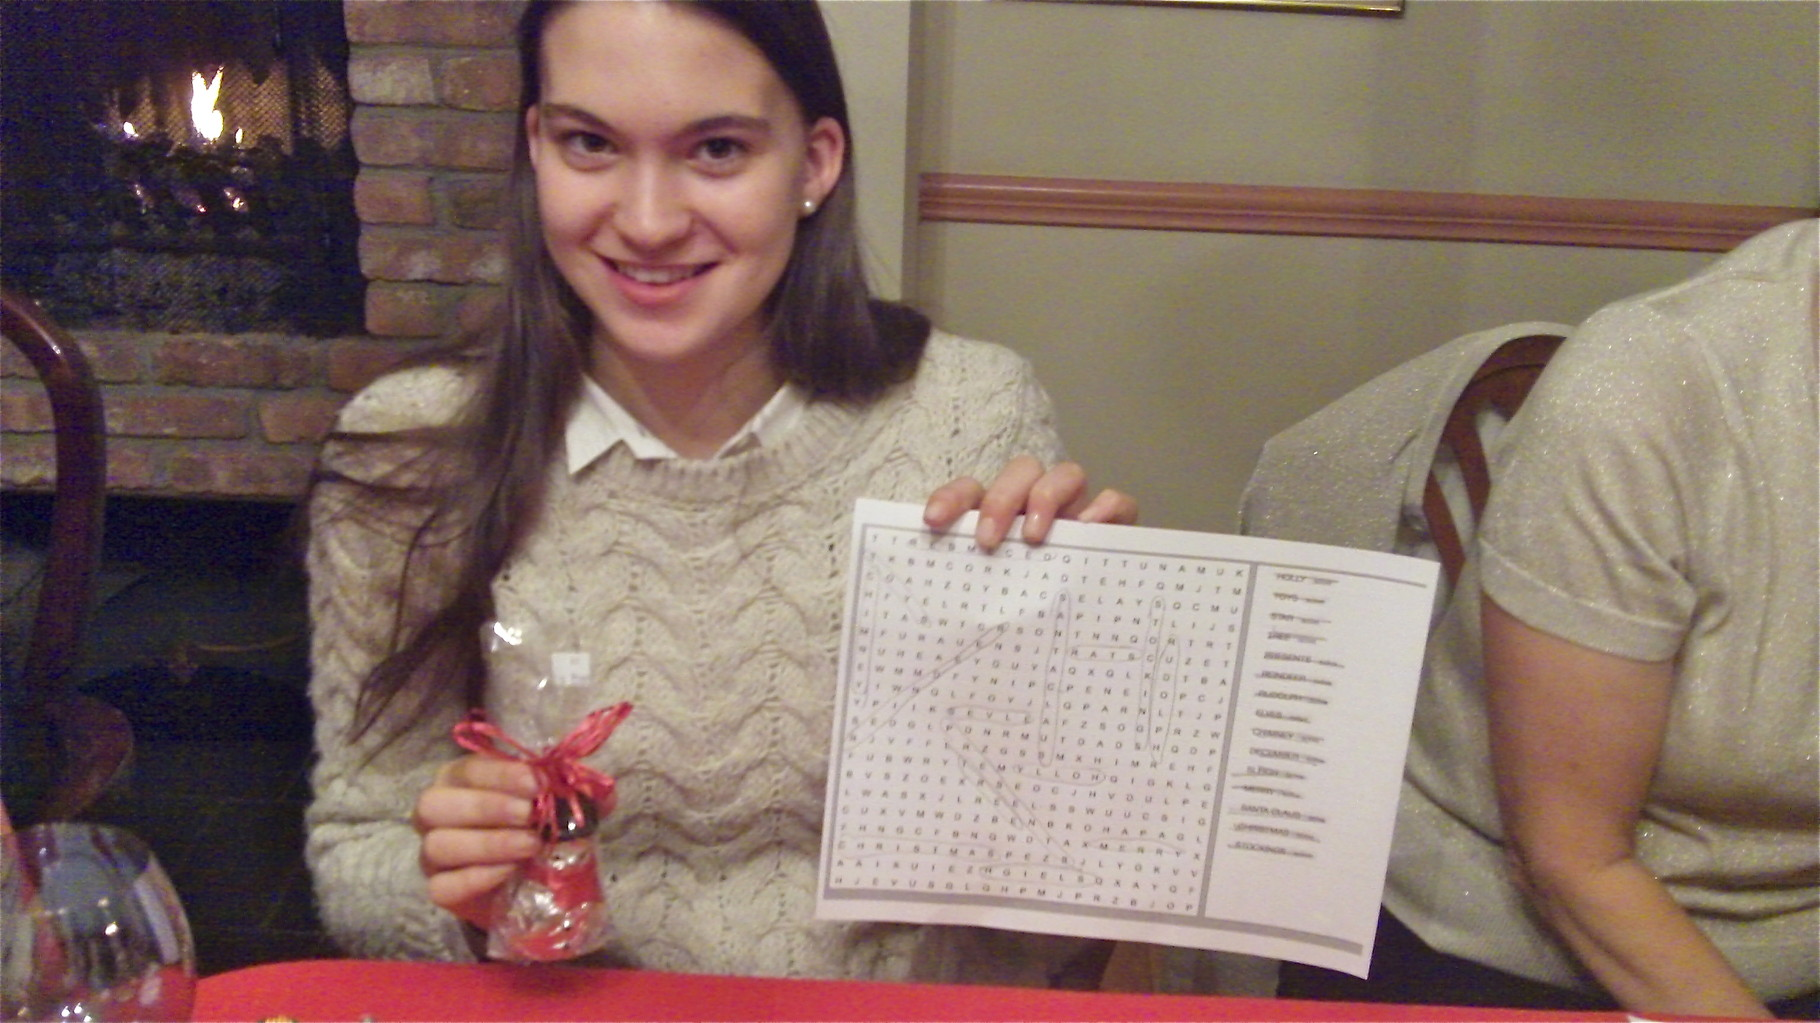 Ellie is second in the Xmas word search puzzle!